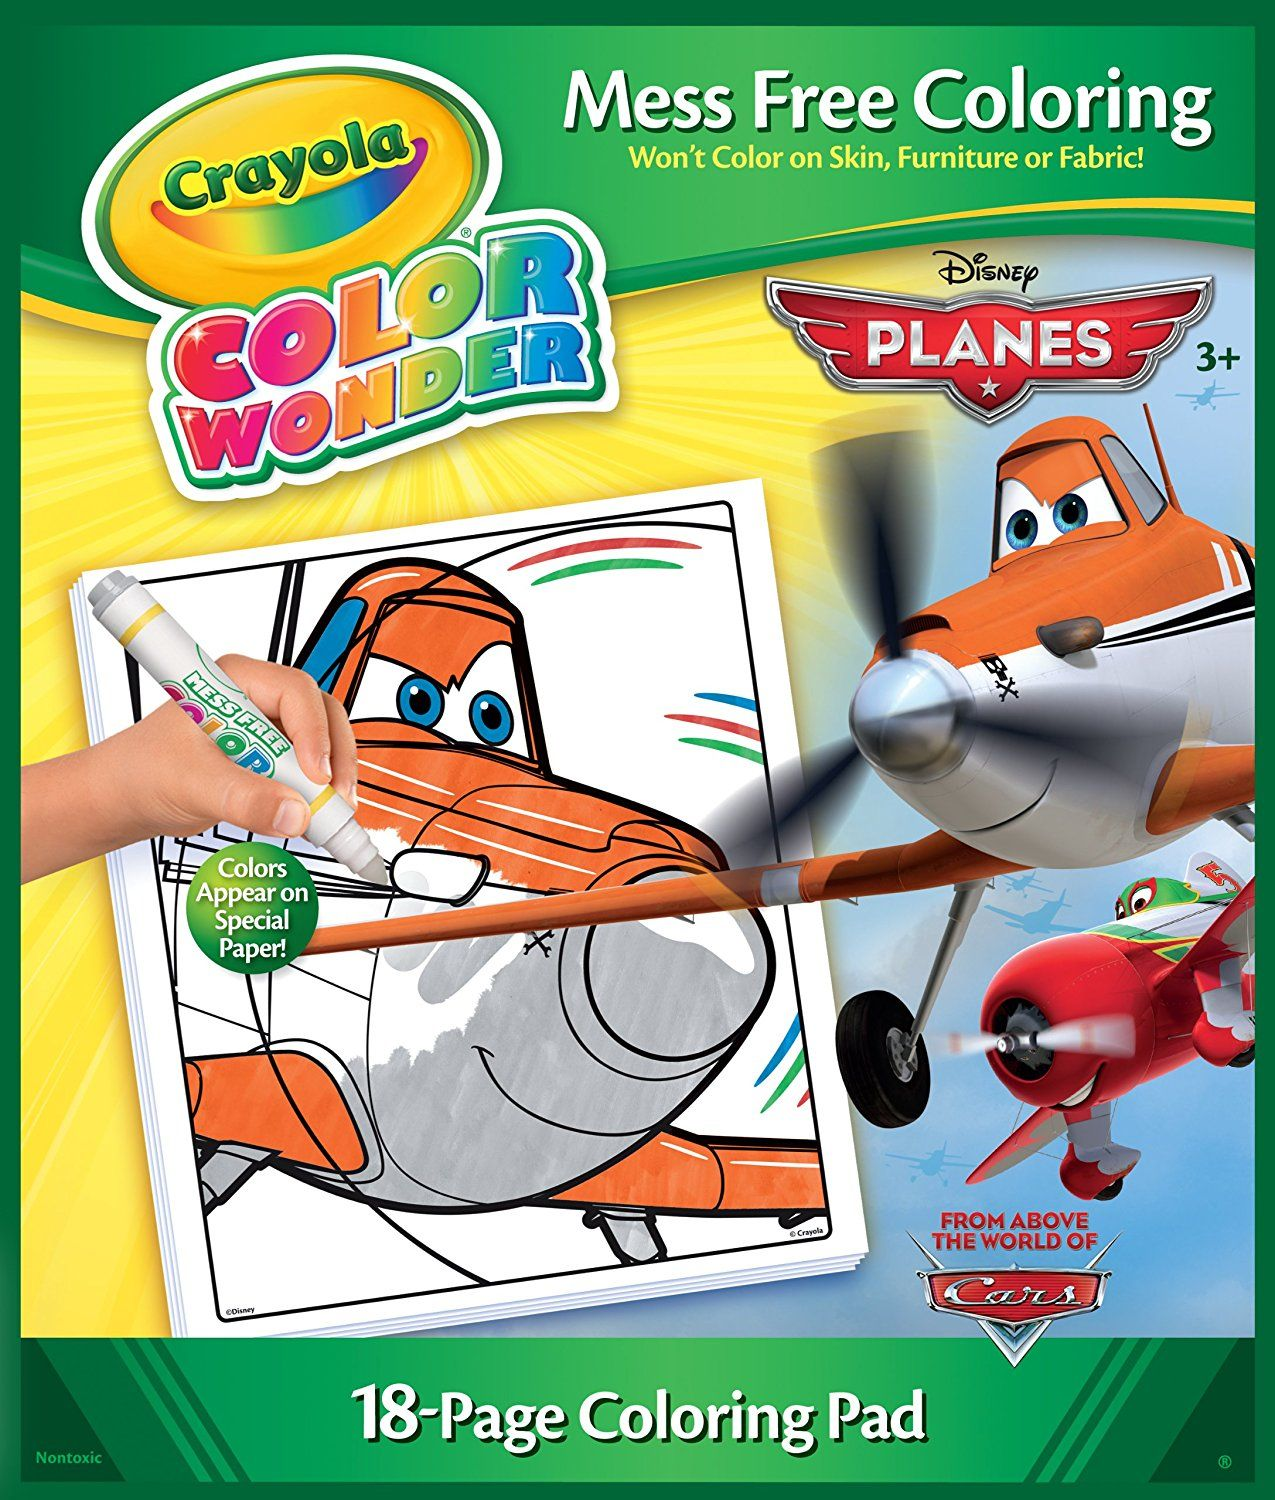 Amazon.com: Crayola Color Wonder Disney Planes Coloring Book and ...